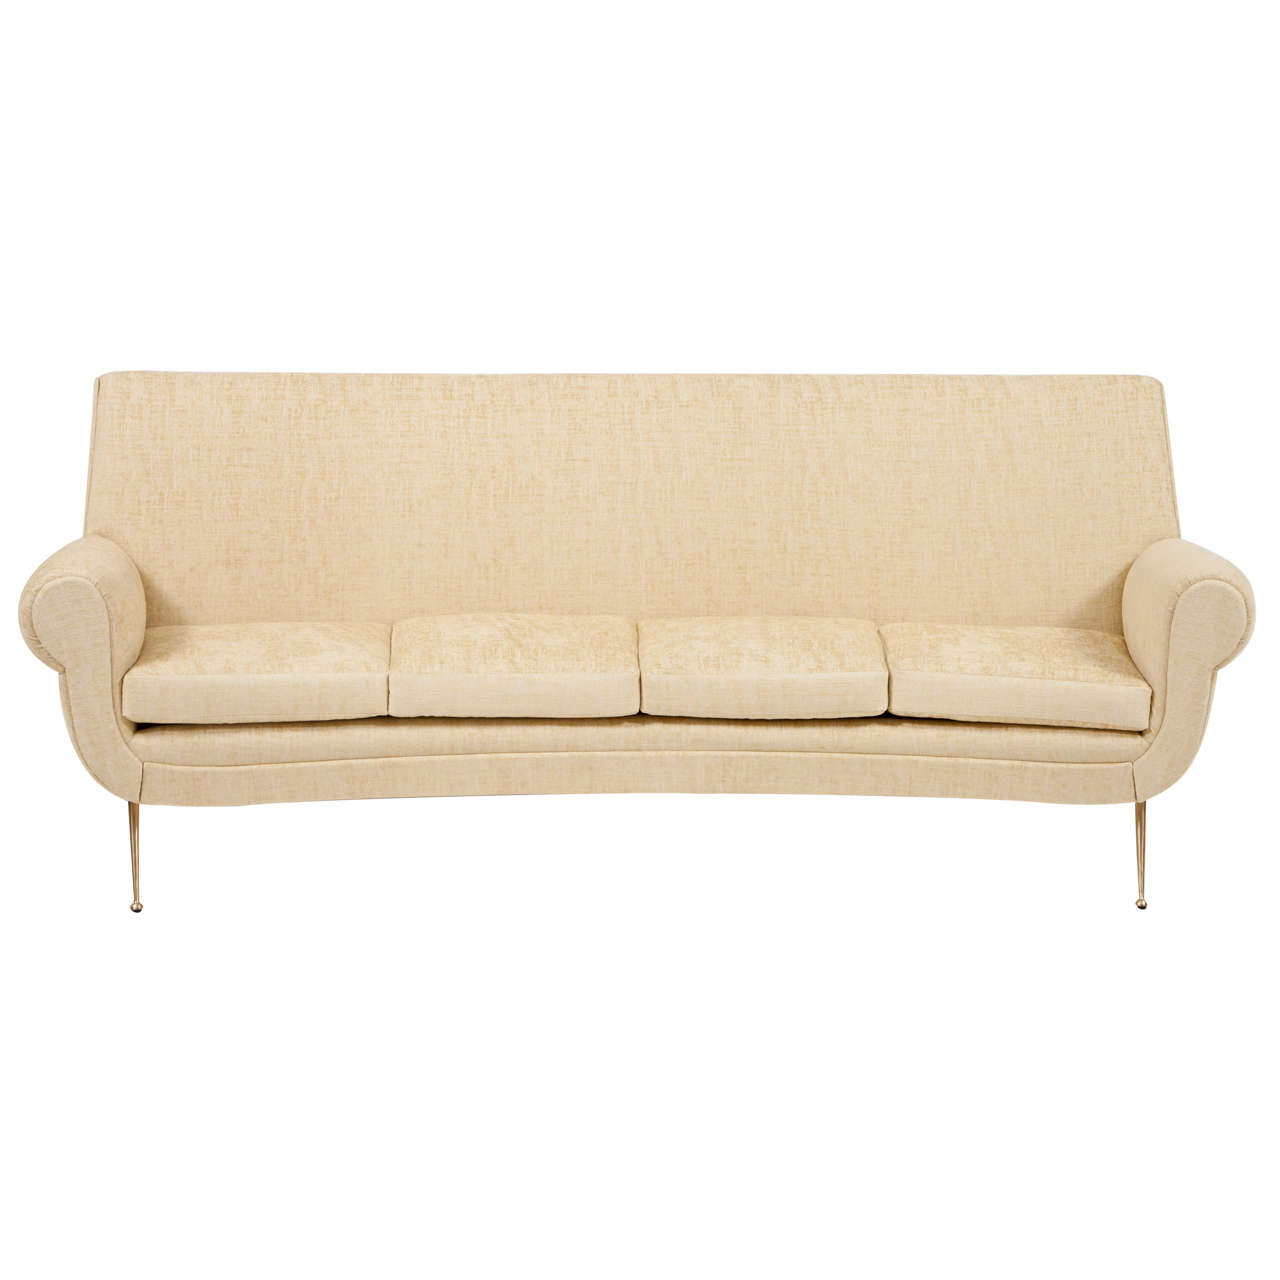 curved sofa set india conversation sectional italian at 1stdibs